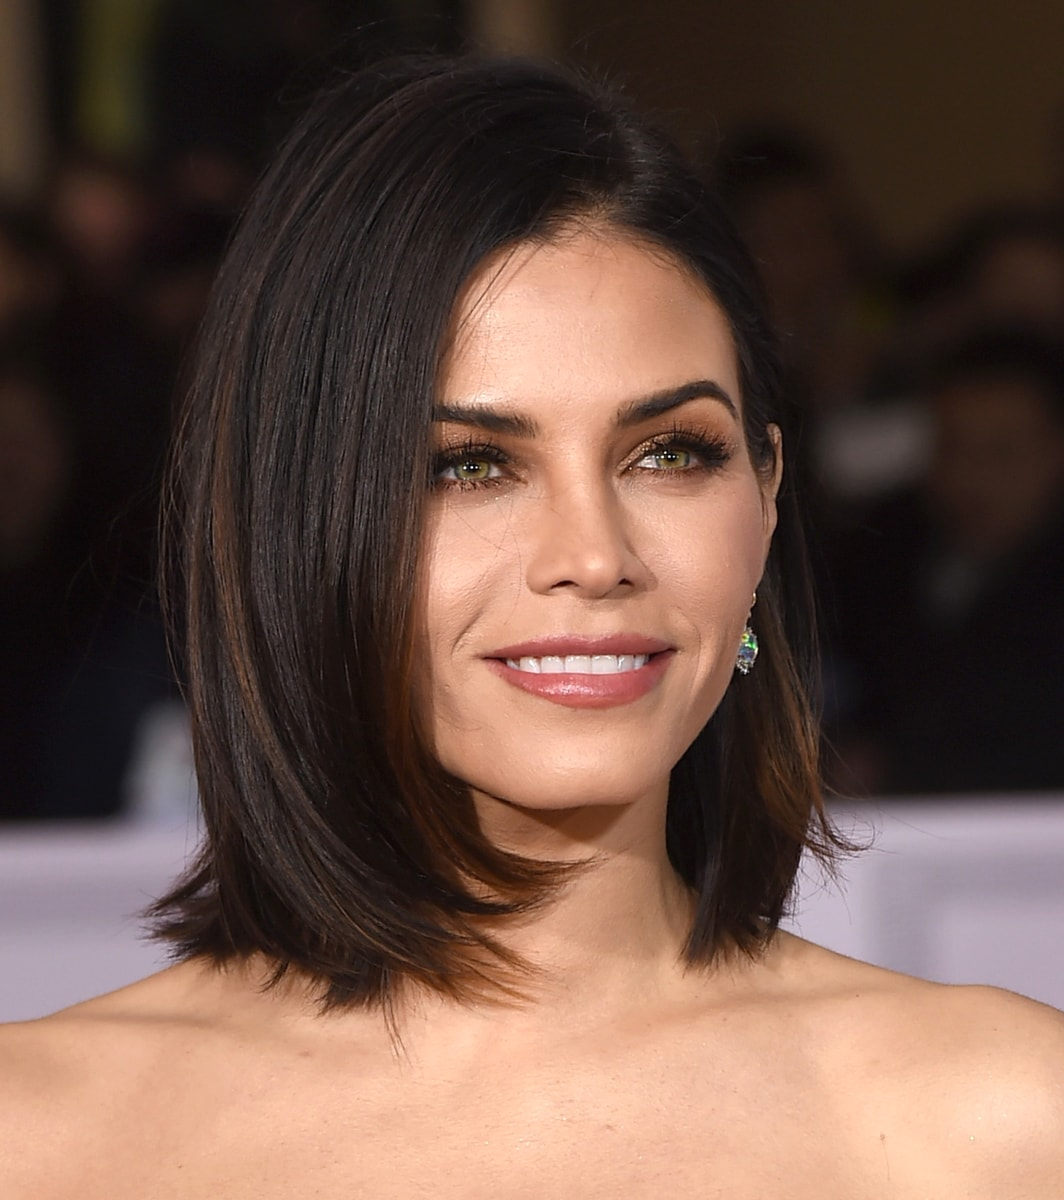 Jenna Dewan Tatum debuts shag haircut with bangs TODAY